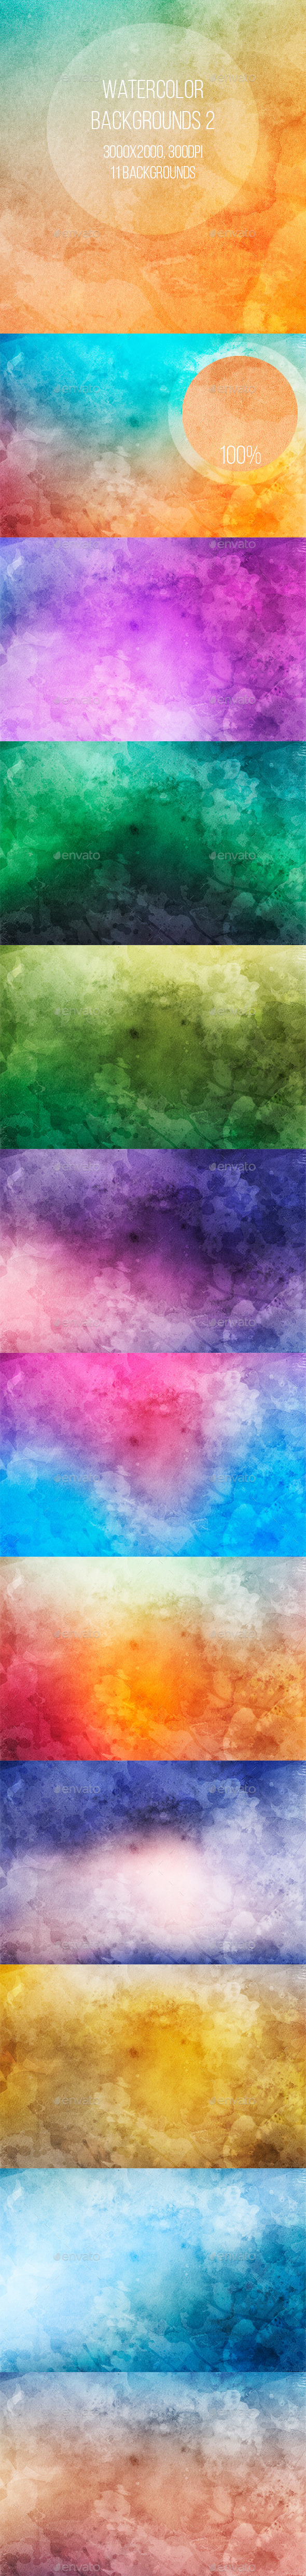 GraphicRiver Watercolor Backgrounds 2 9610280